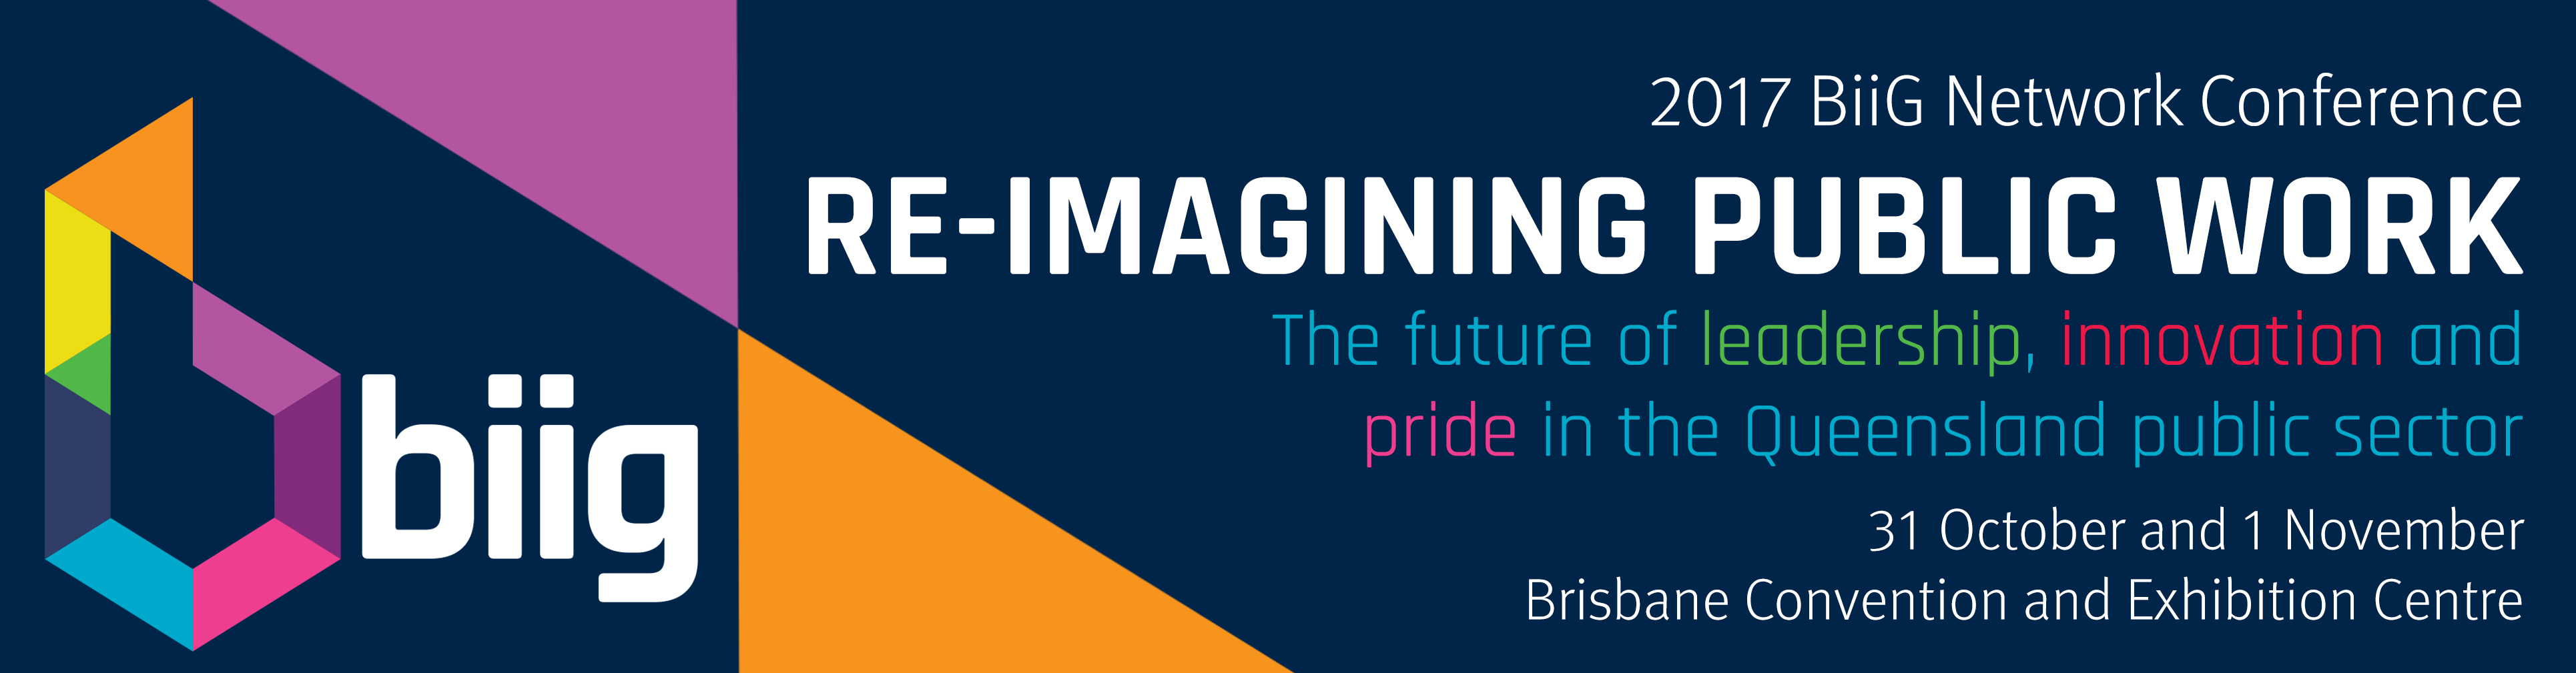 Re-imagining public work: The future of leadership, innovation and pride in the Queensland public sector